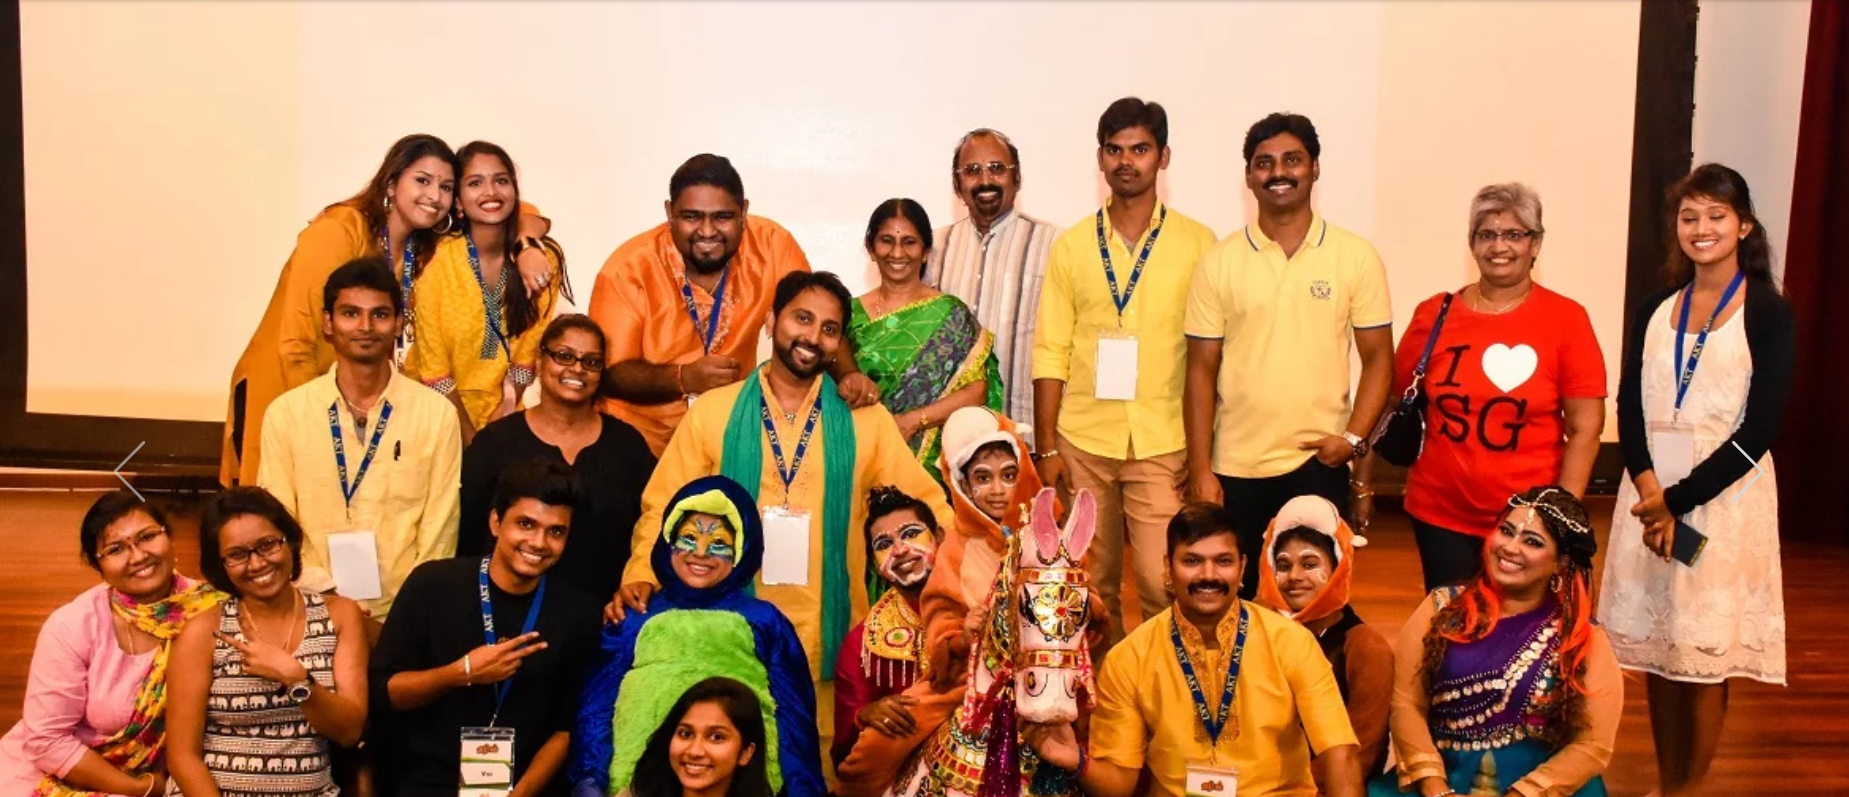 Anandha Kannan -middle row centre - with his AKT family. Photo Courtesy: AKT Creations